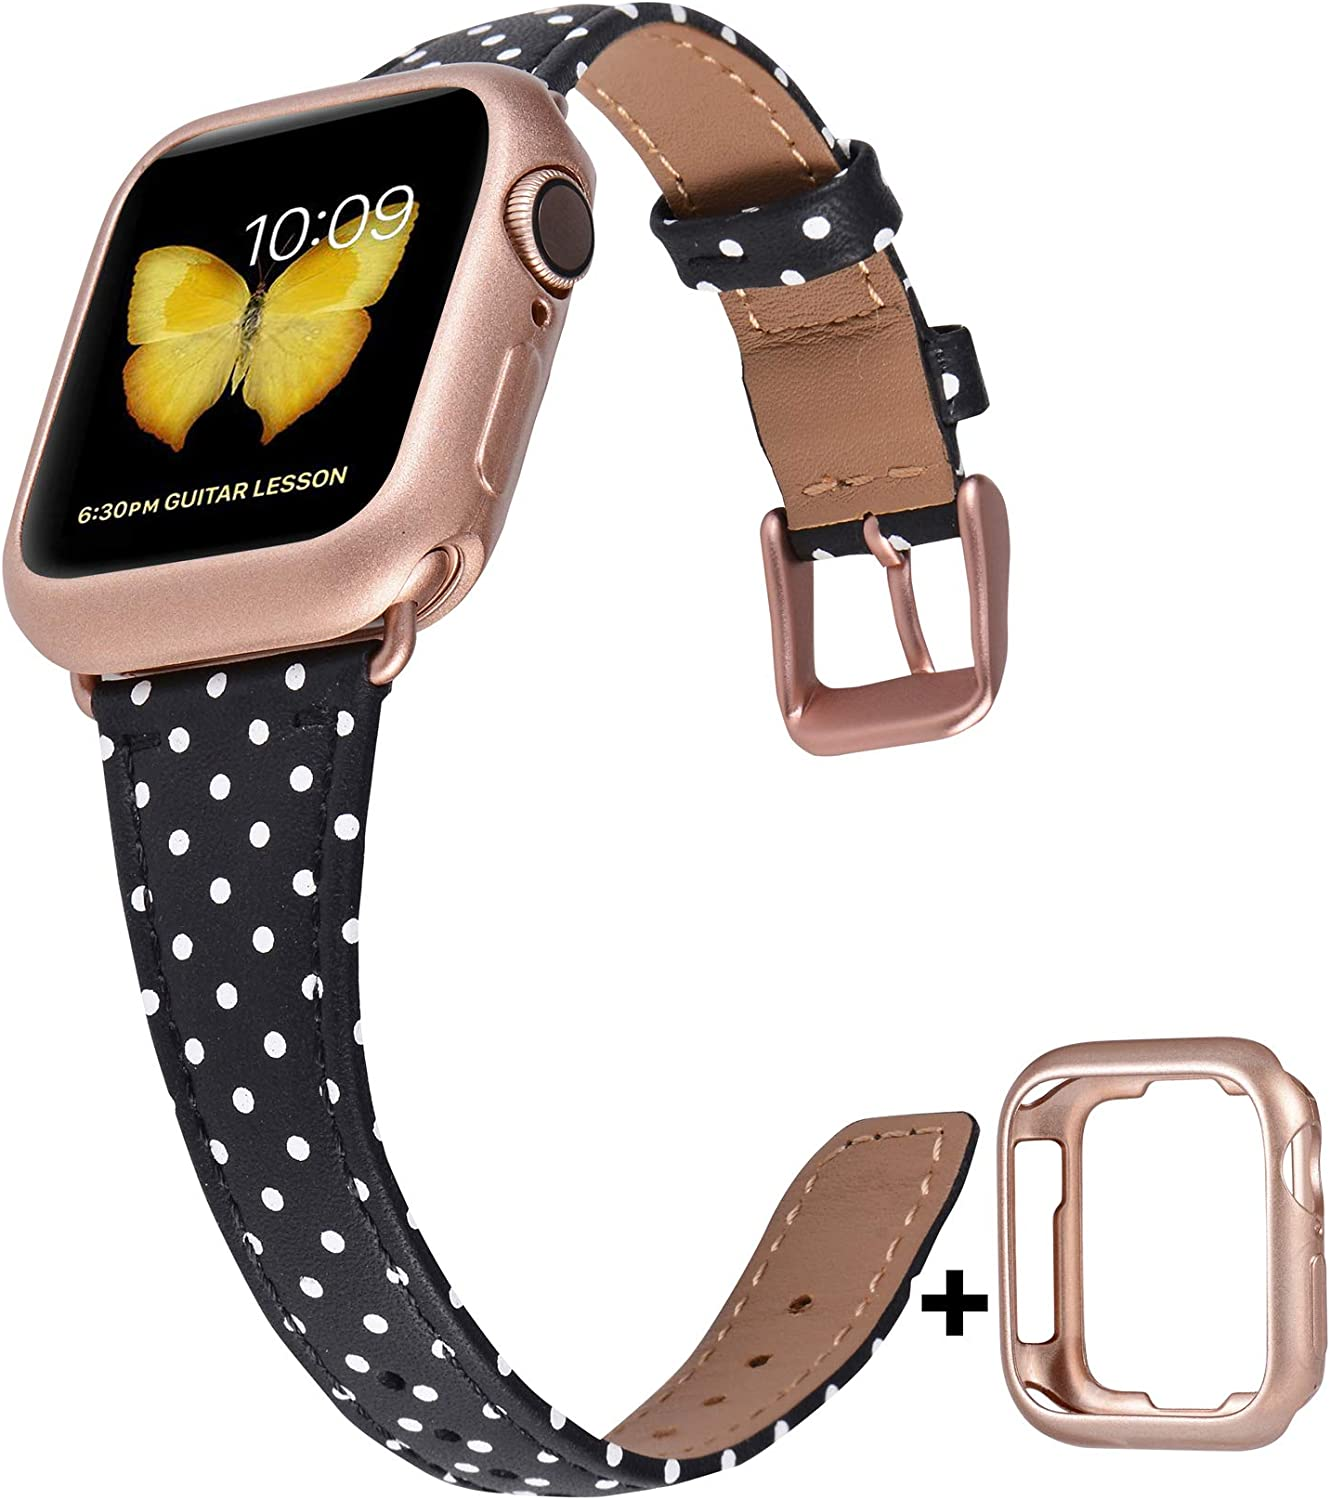 JFdragon Slim Leather Bands Compatible with Apple Watch 38mm 40mm 42mm 44mm Womens Girls Strap for iWatch SE/Series/6/5/4/3/2/1